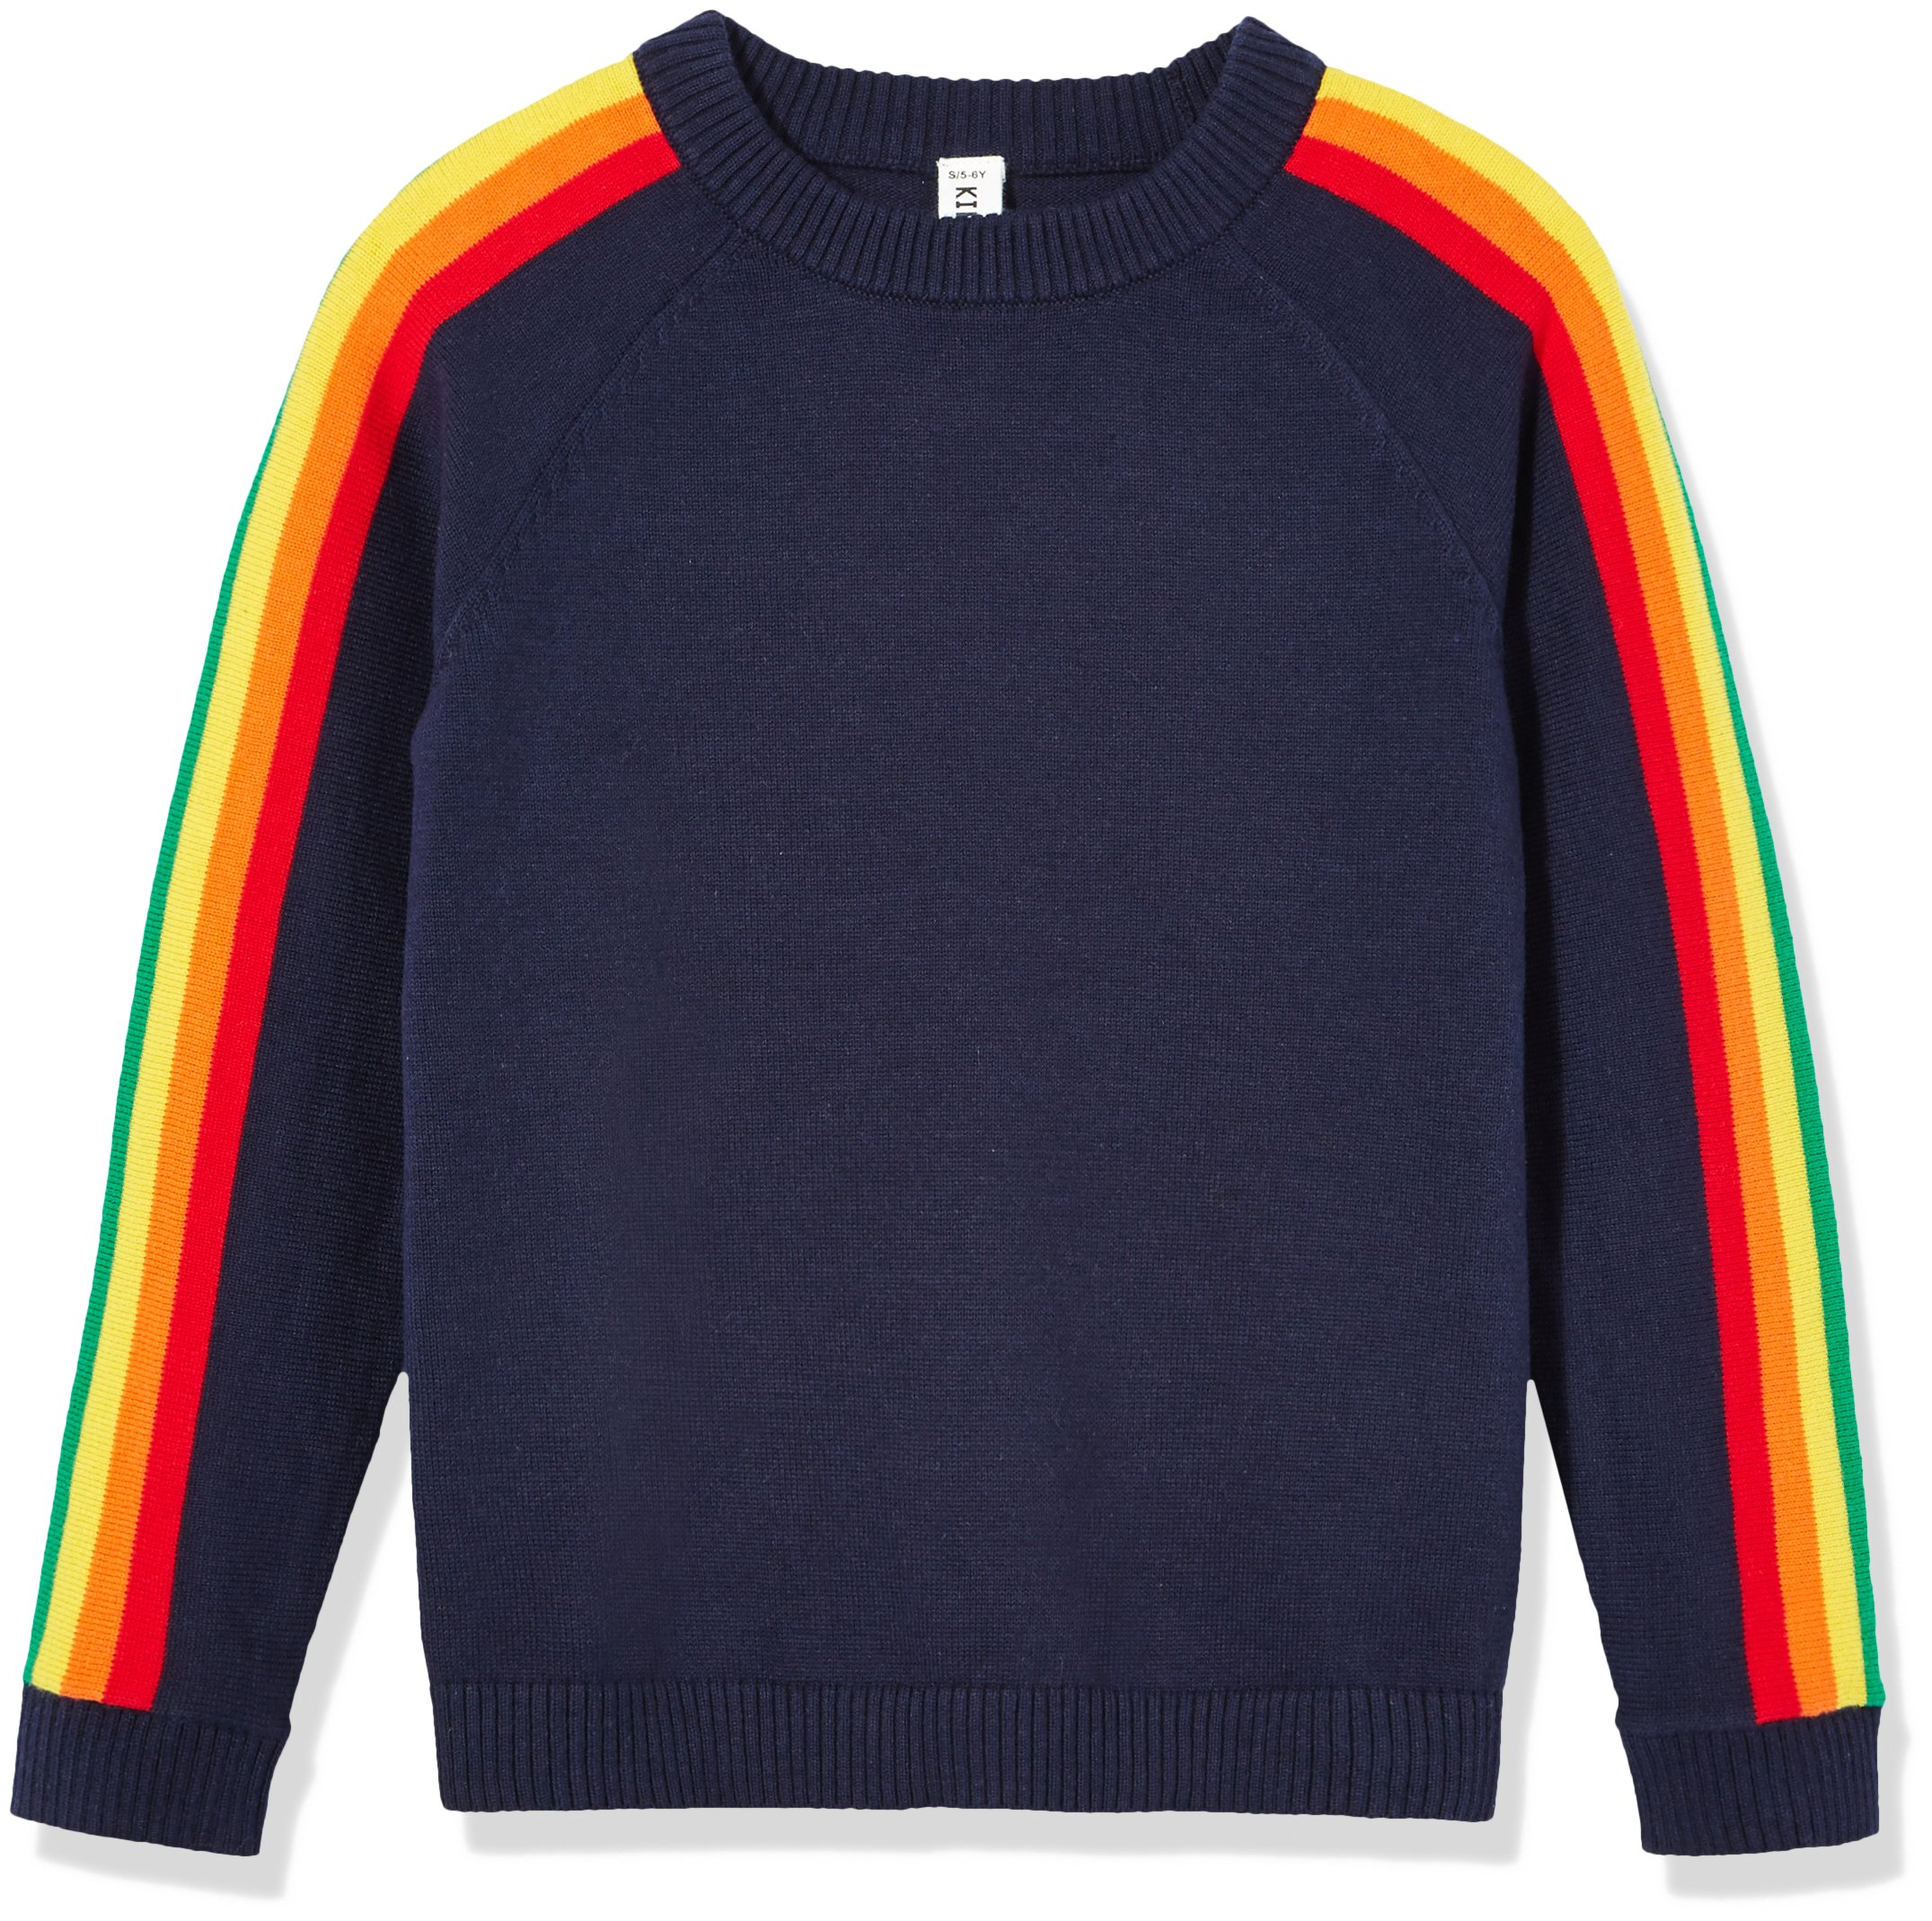 Kid Nation Kids'' Long Sleeve Pullover Sweater Rainbow for Boys or Girls M Navy